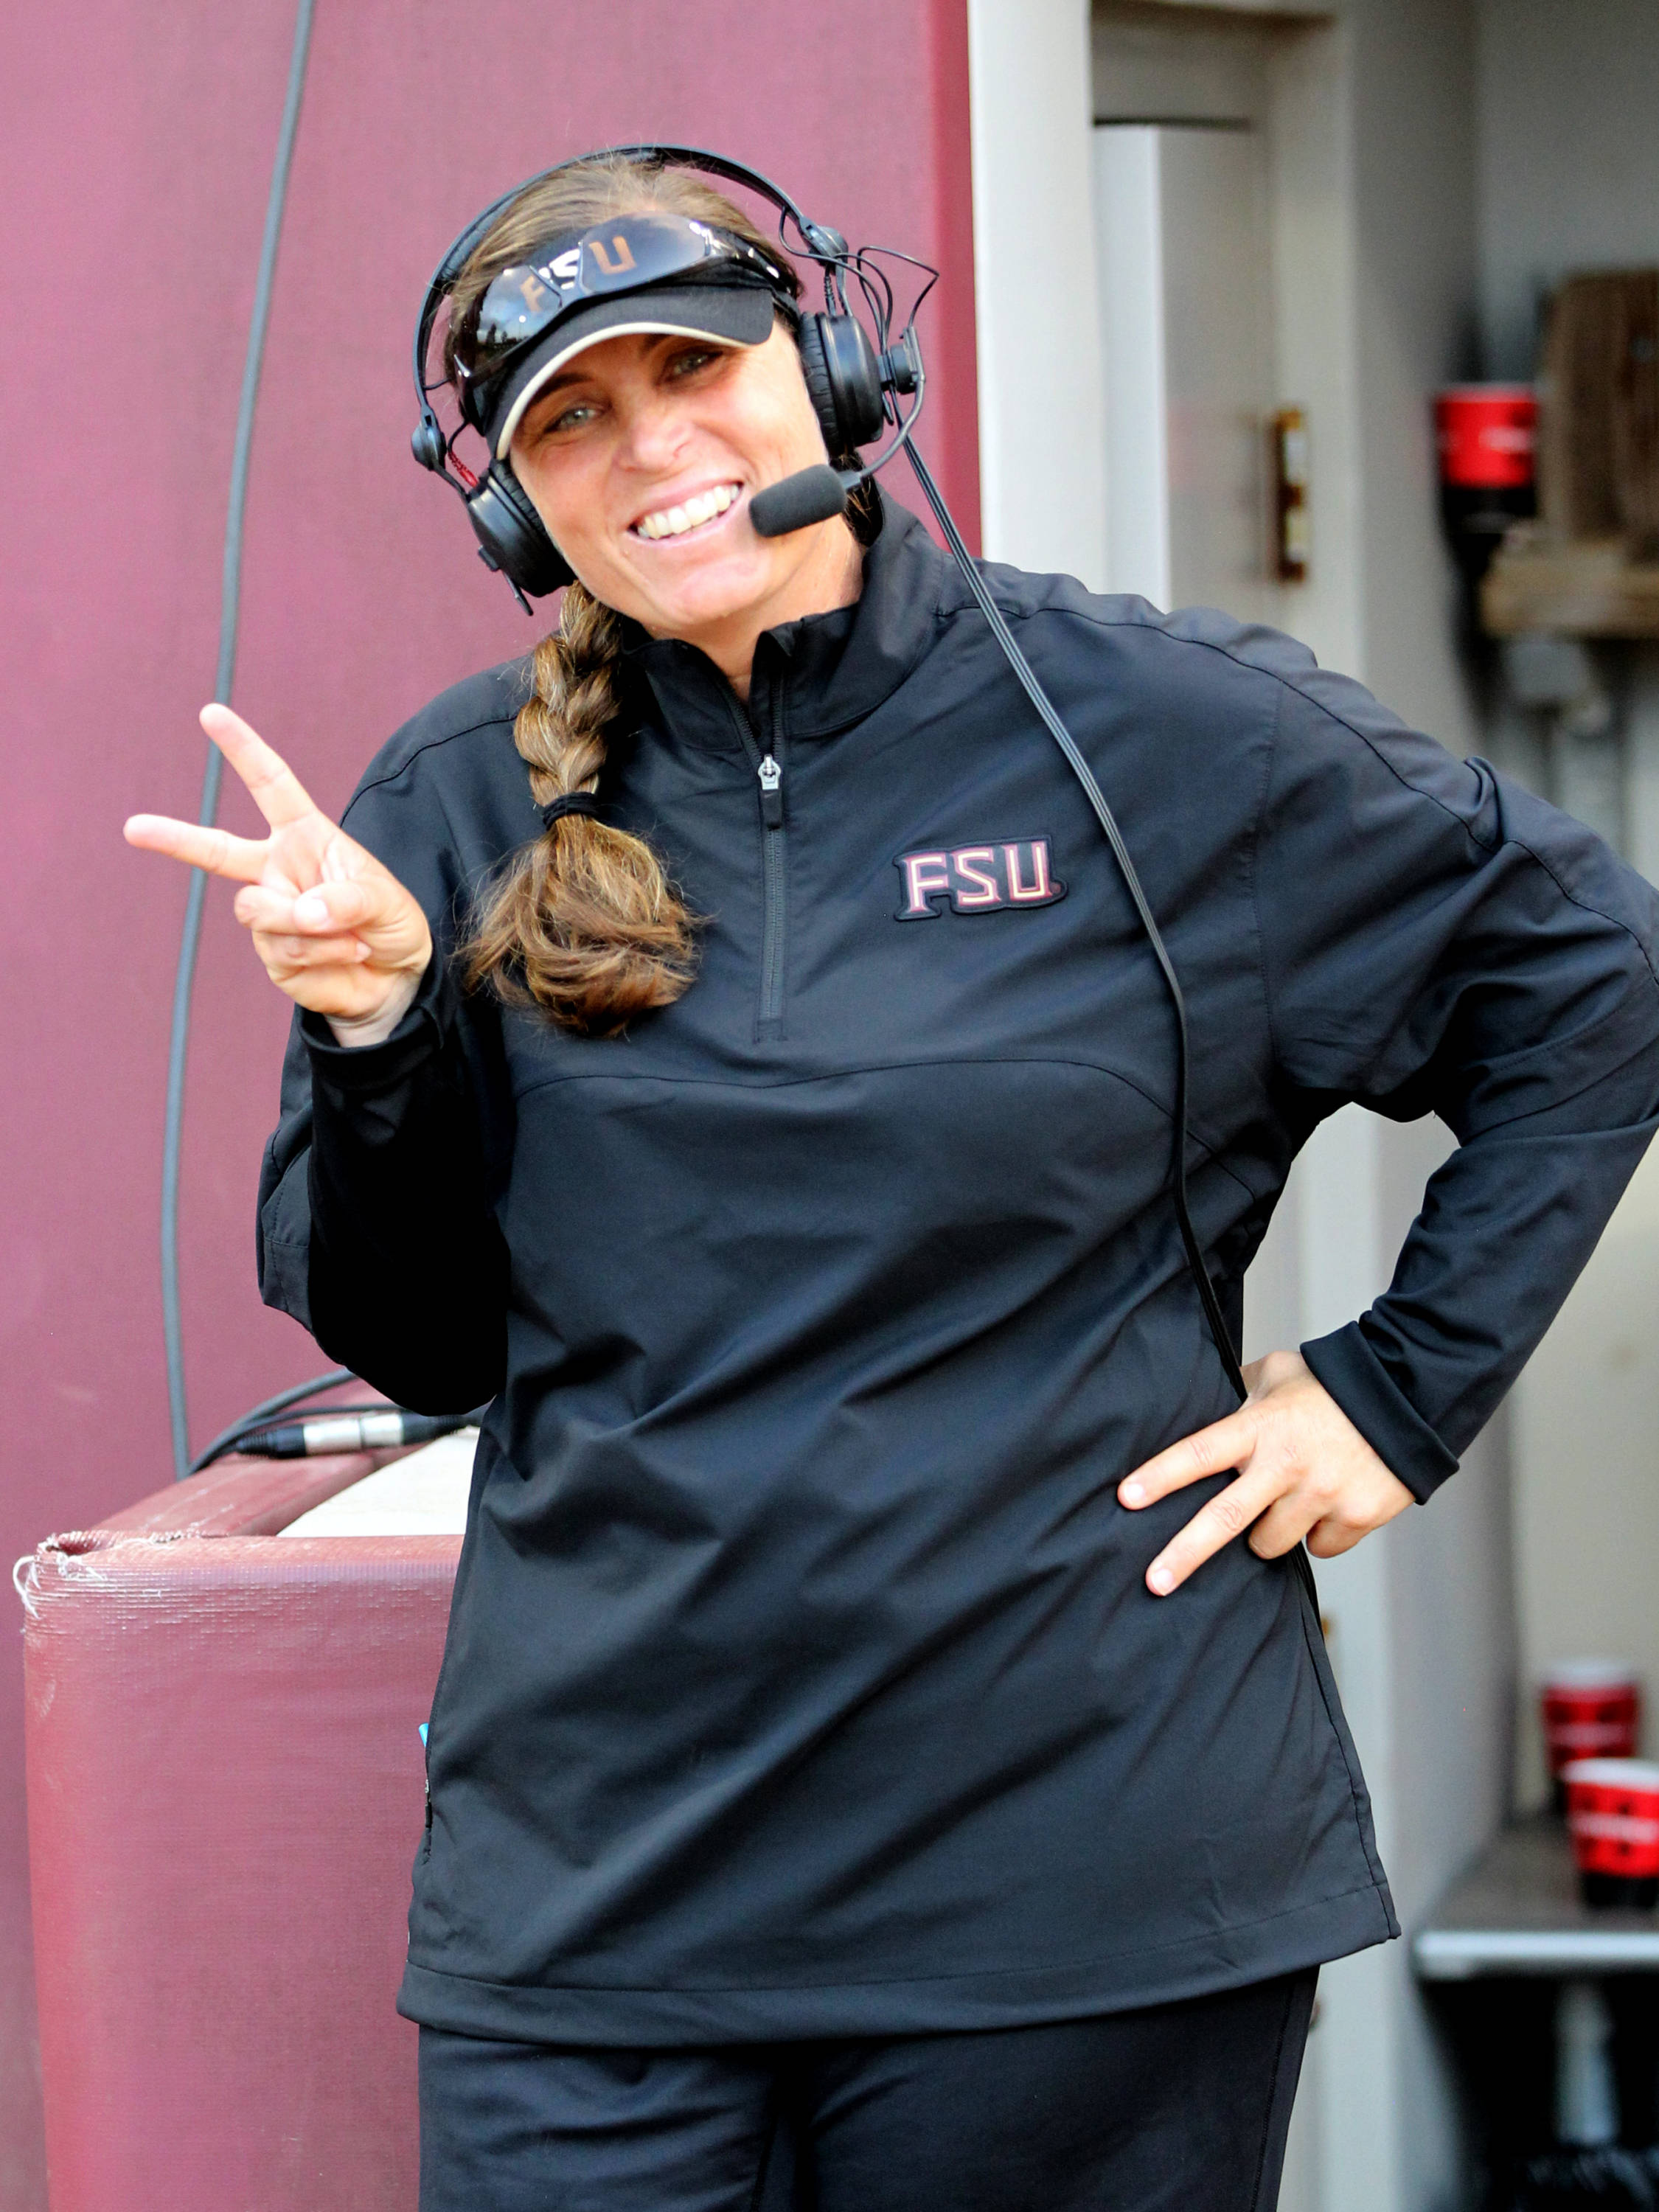 Head Coach Lonni Alameda during an interview, FSU vs Virginia, 04/13/13 . (Photo by Steve Musco)